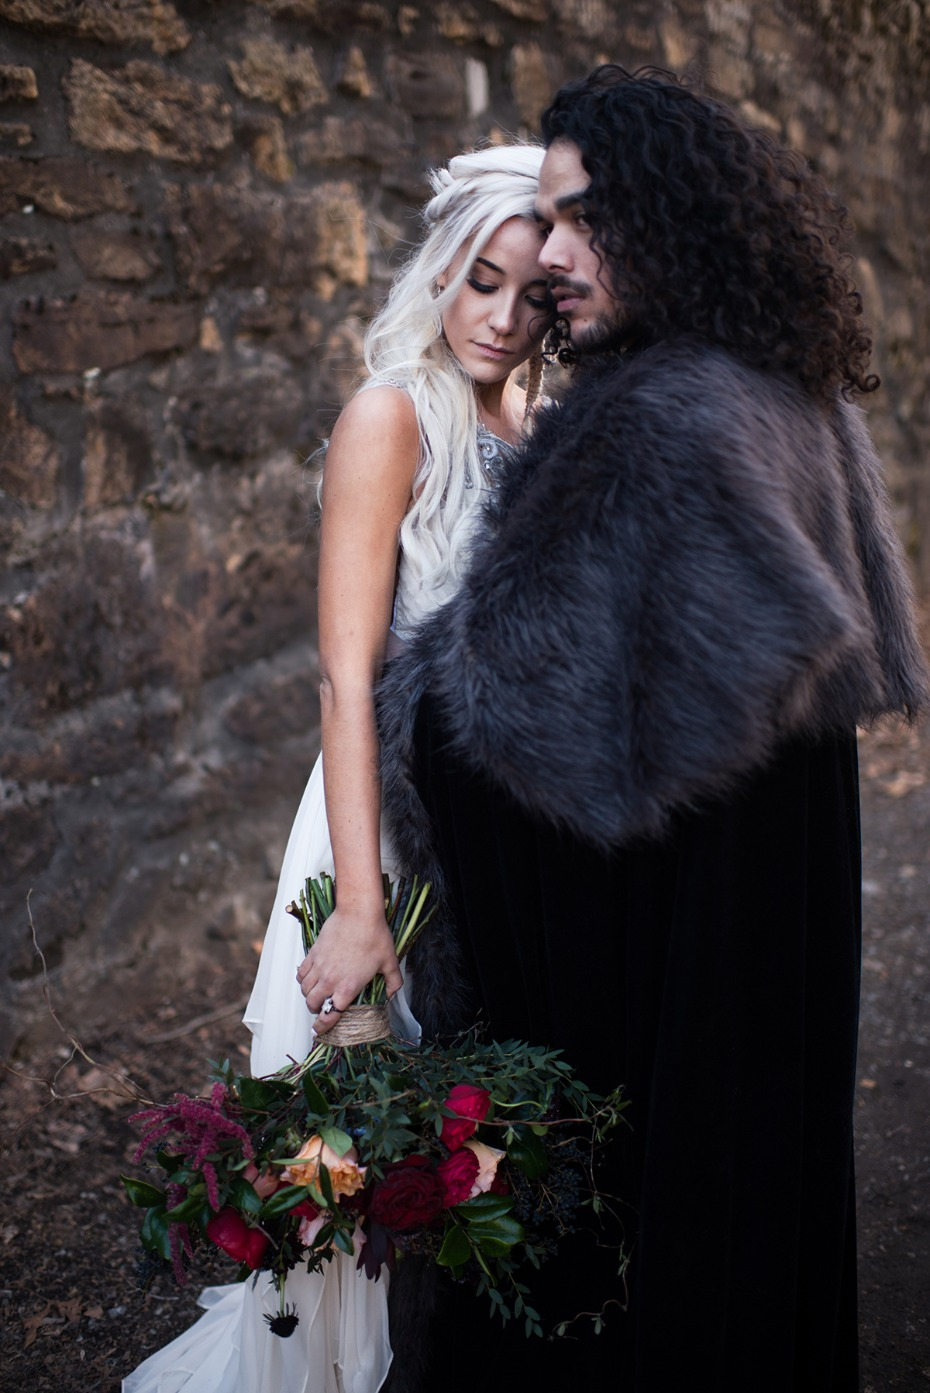 sweet Game of Thrones wedding